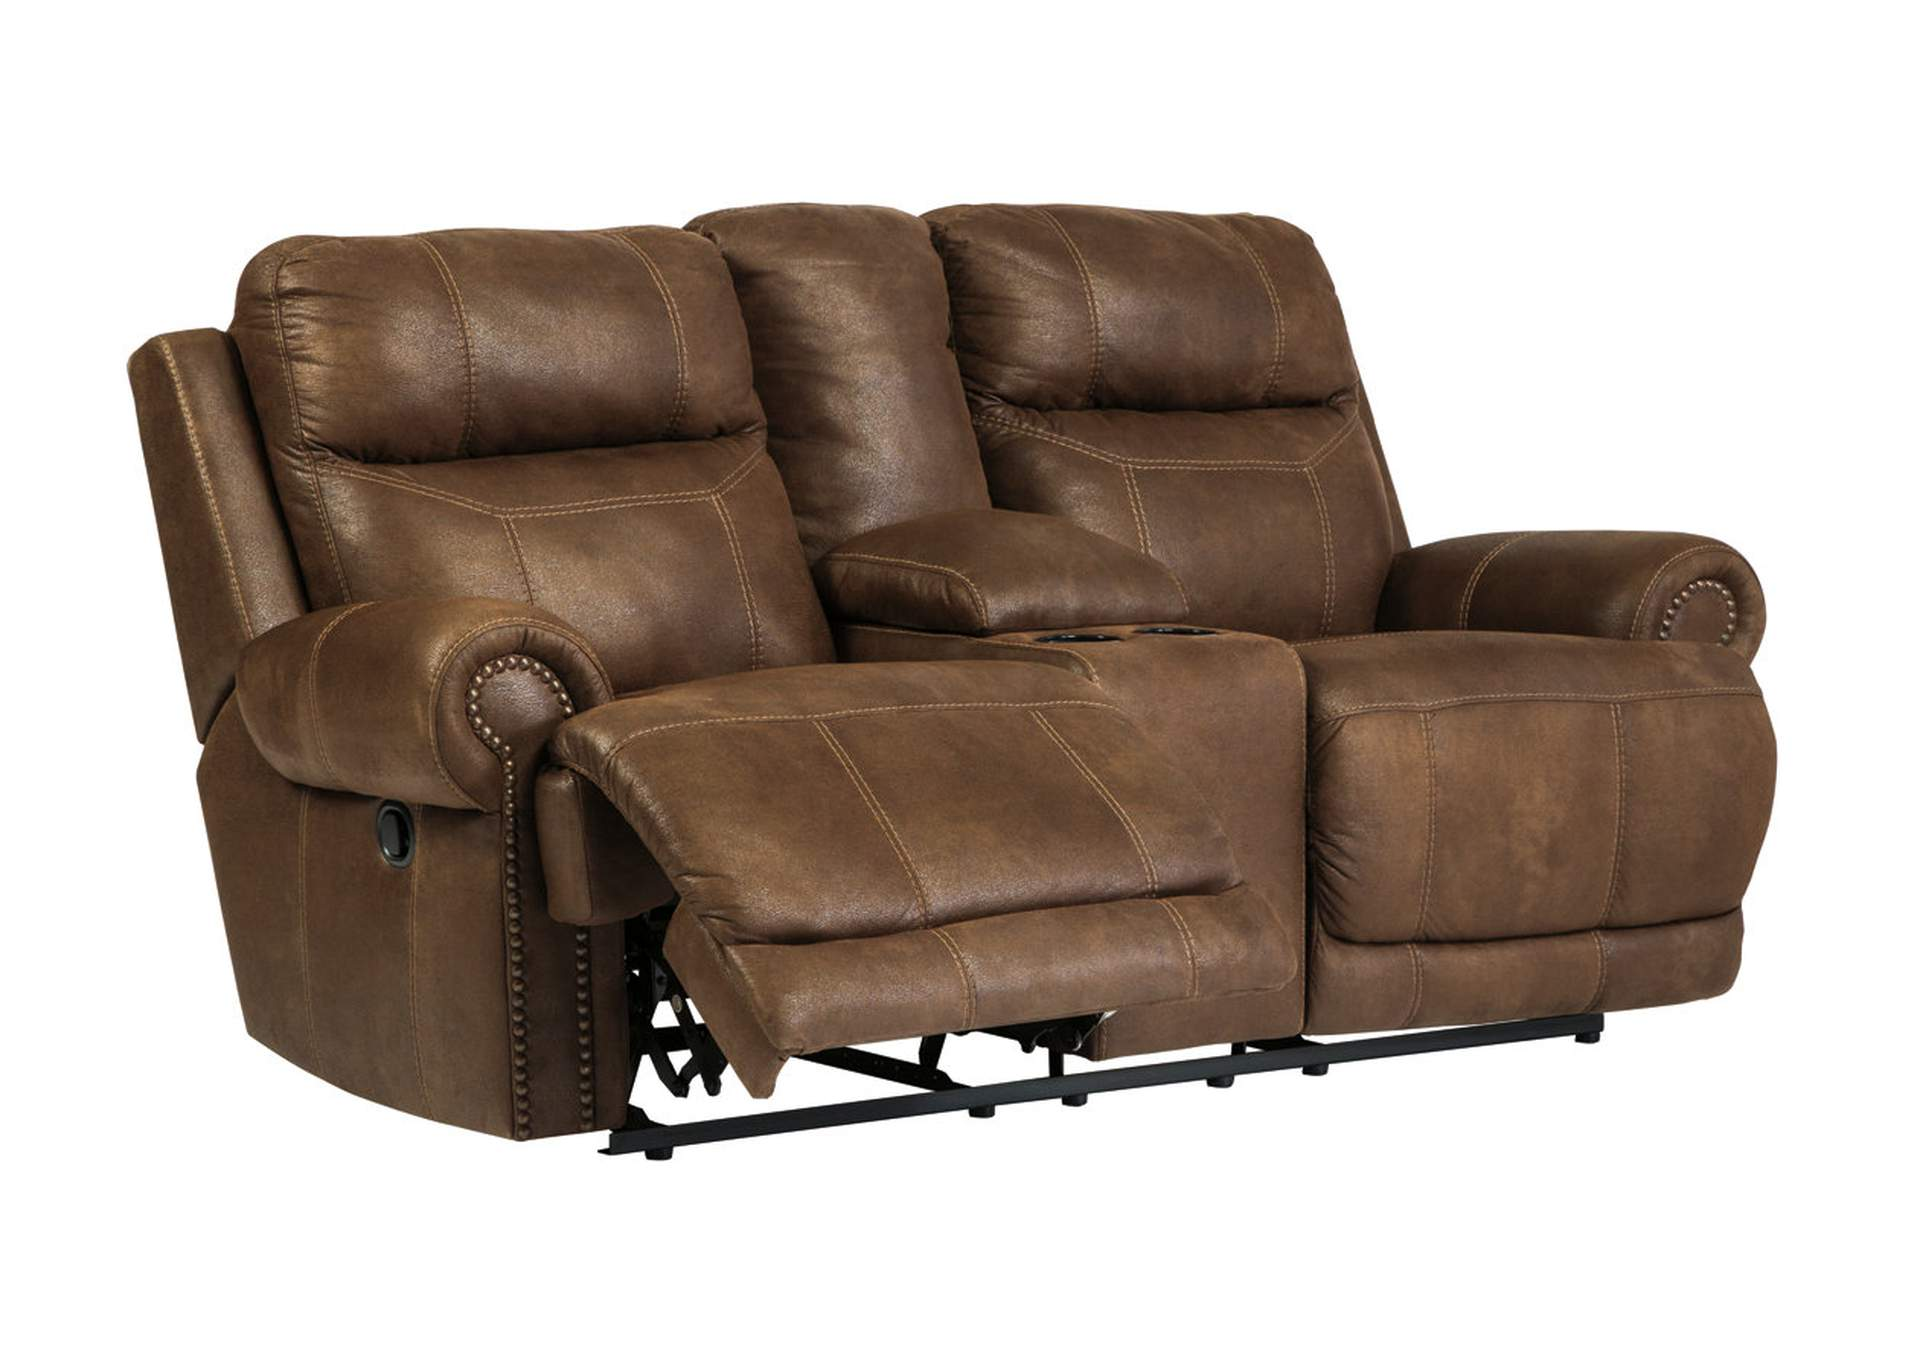 Austere Brown Double Reclining Power Loveseat w/Console,Signature Design By Ashley